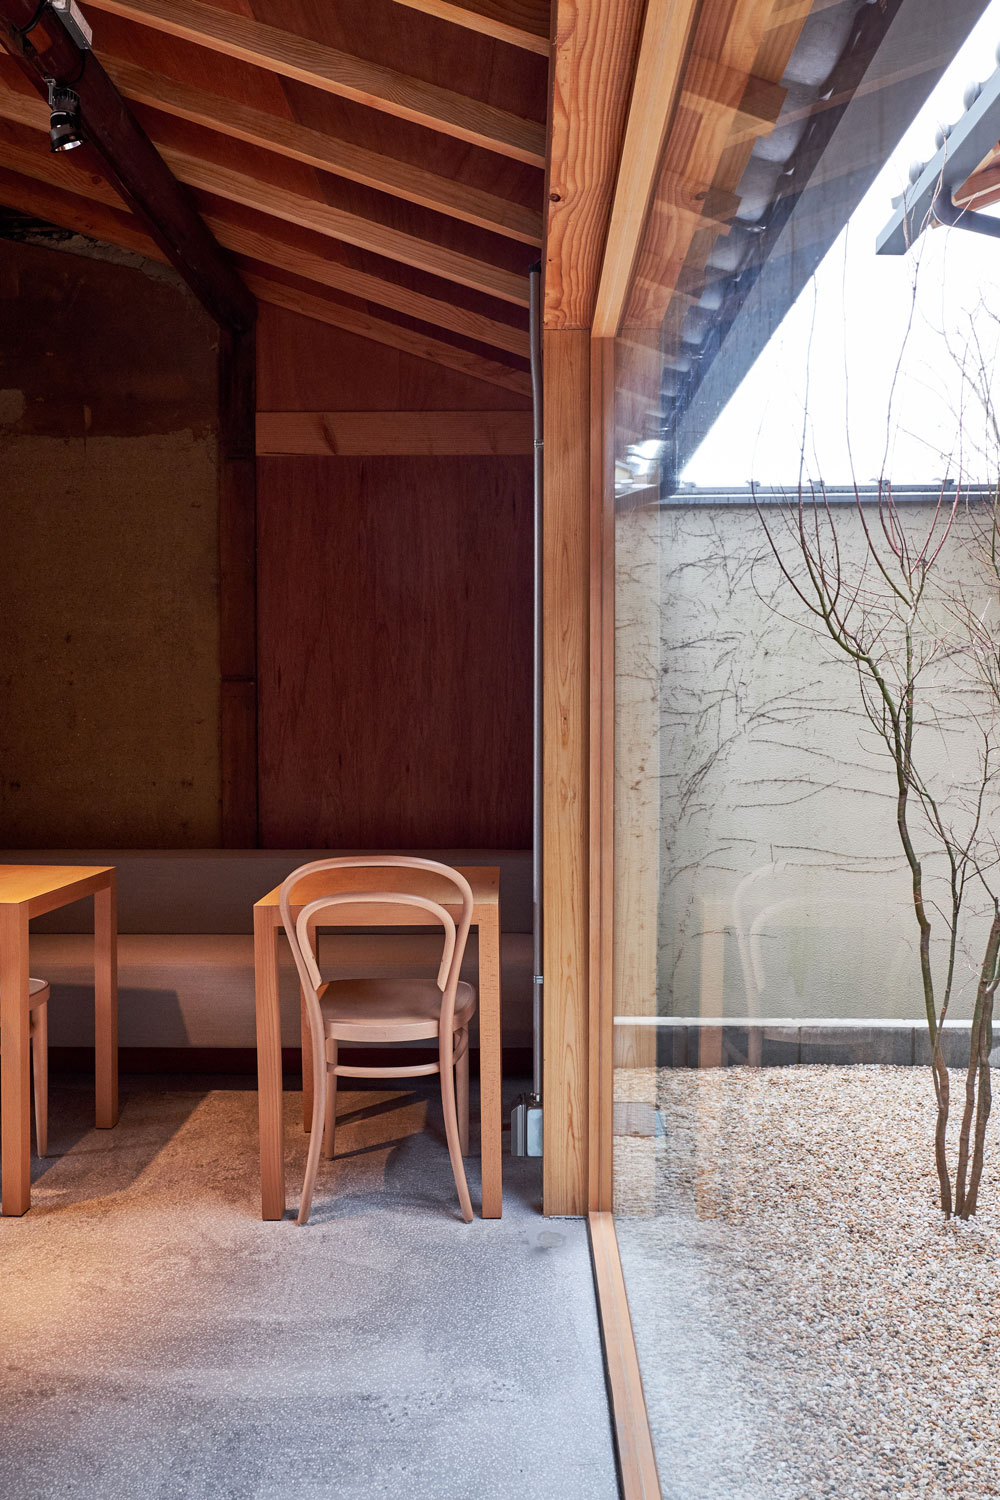 Interior view of the architectural zen Blue Bottle Coffee in Kyoto, Japan